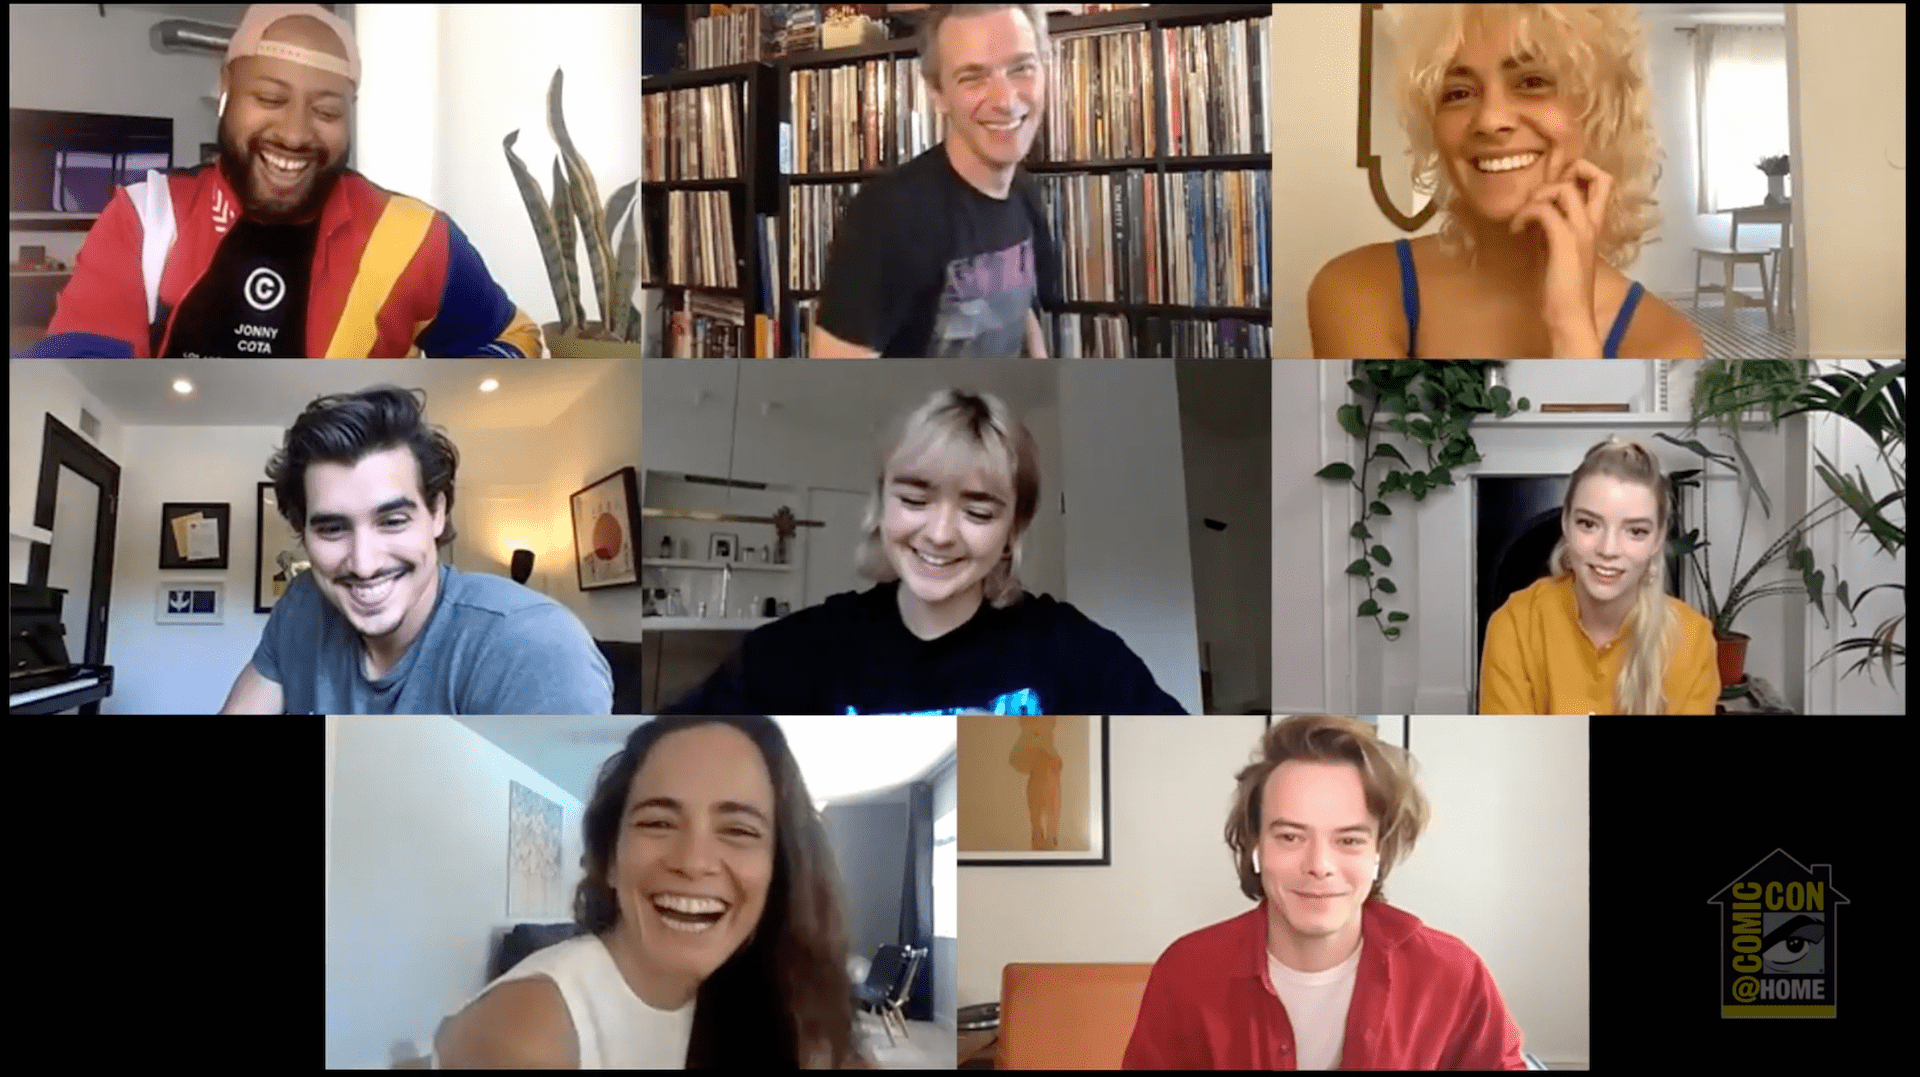 SDCC '20: 'The New Mutants' panel shows off clips, emojis, and chance to see early screening